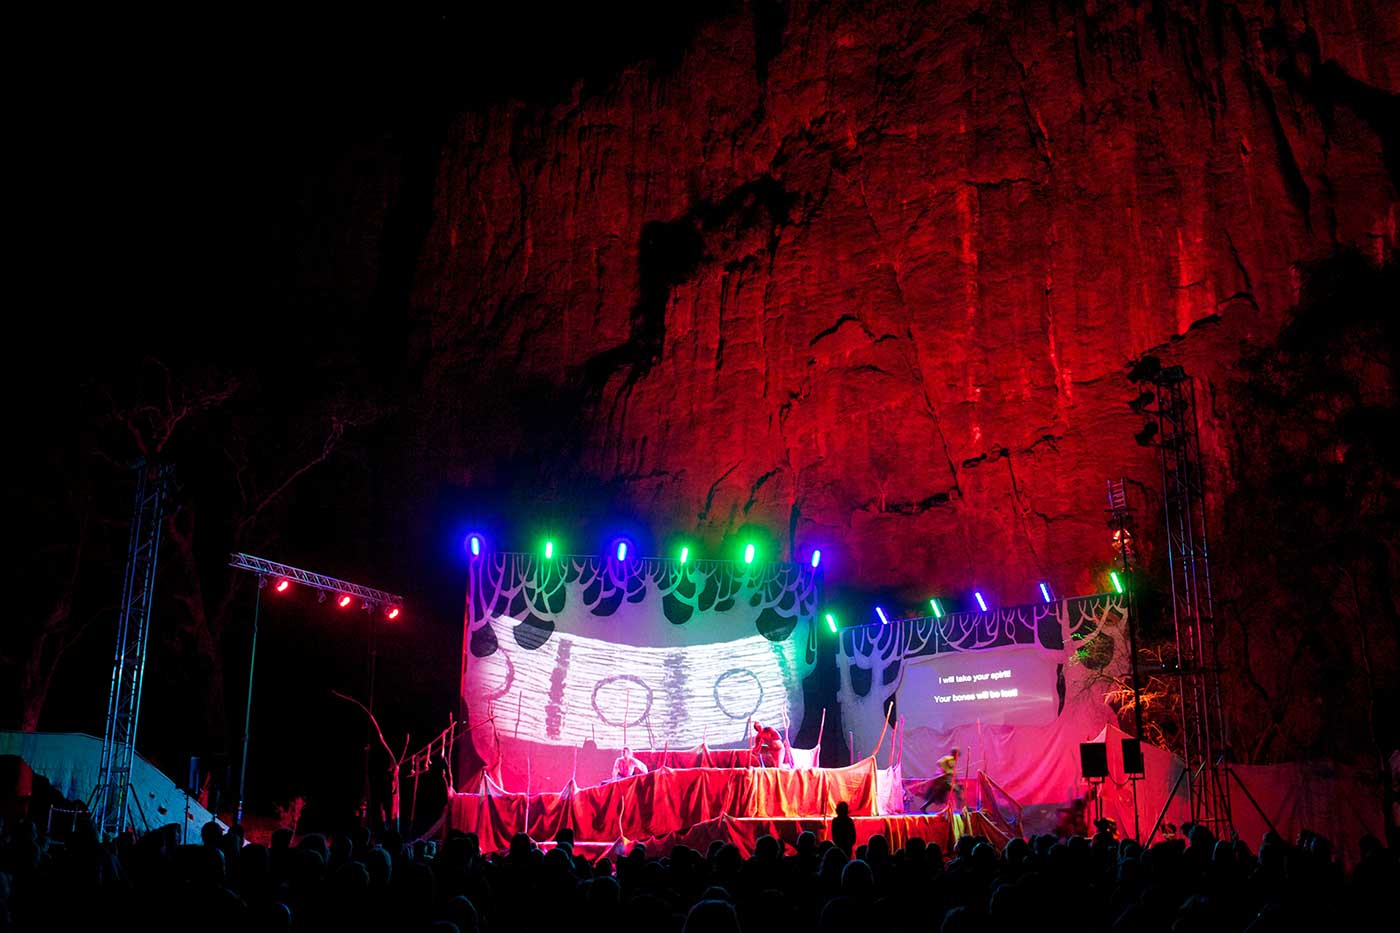 A stage with lights, set in a rocky landscape. - click to view larger image